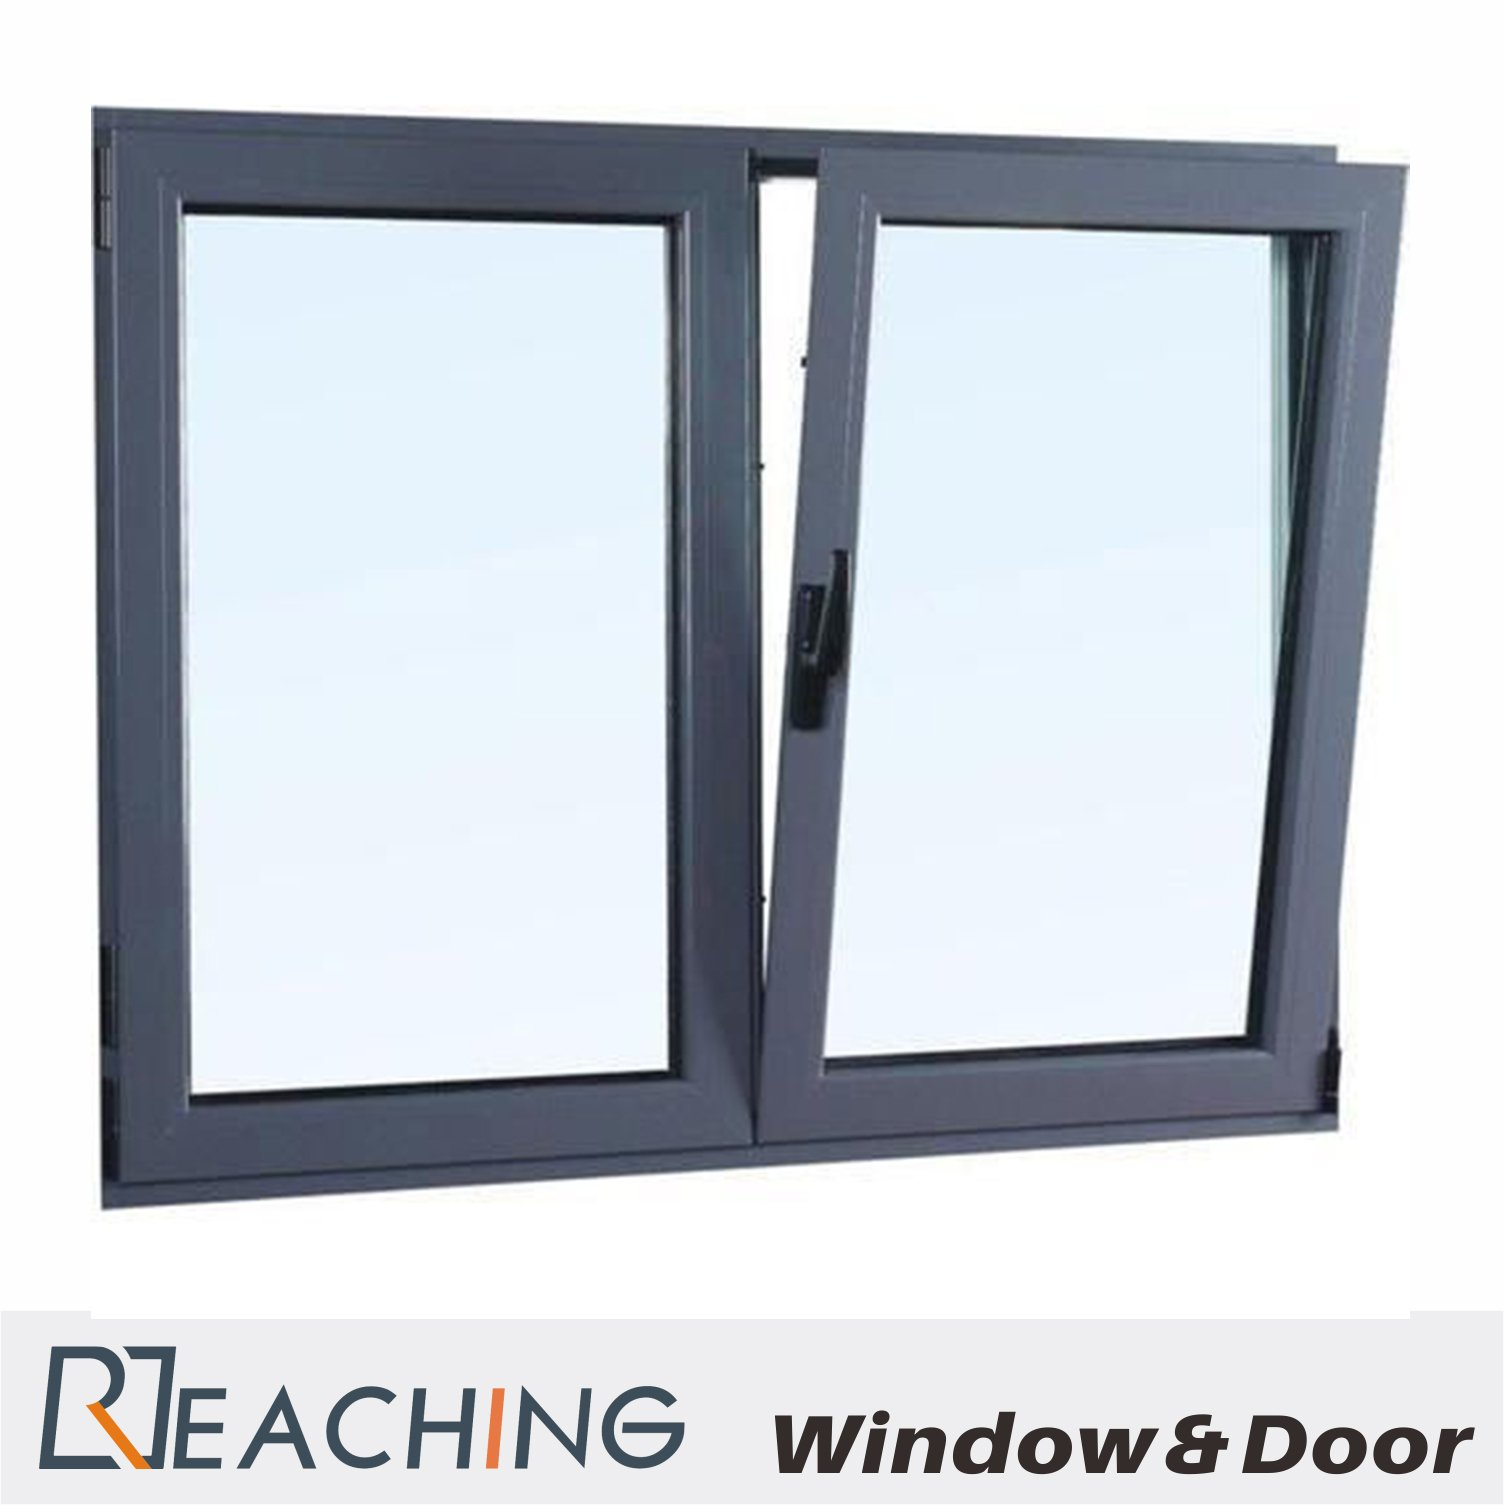 Elegant Grey Color Tilt and Turn Window Metal Casement Windows for Europe Style Two Open Way